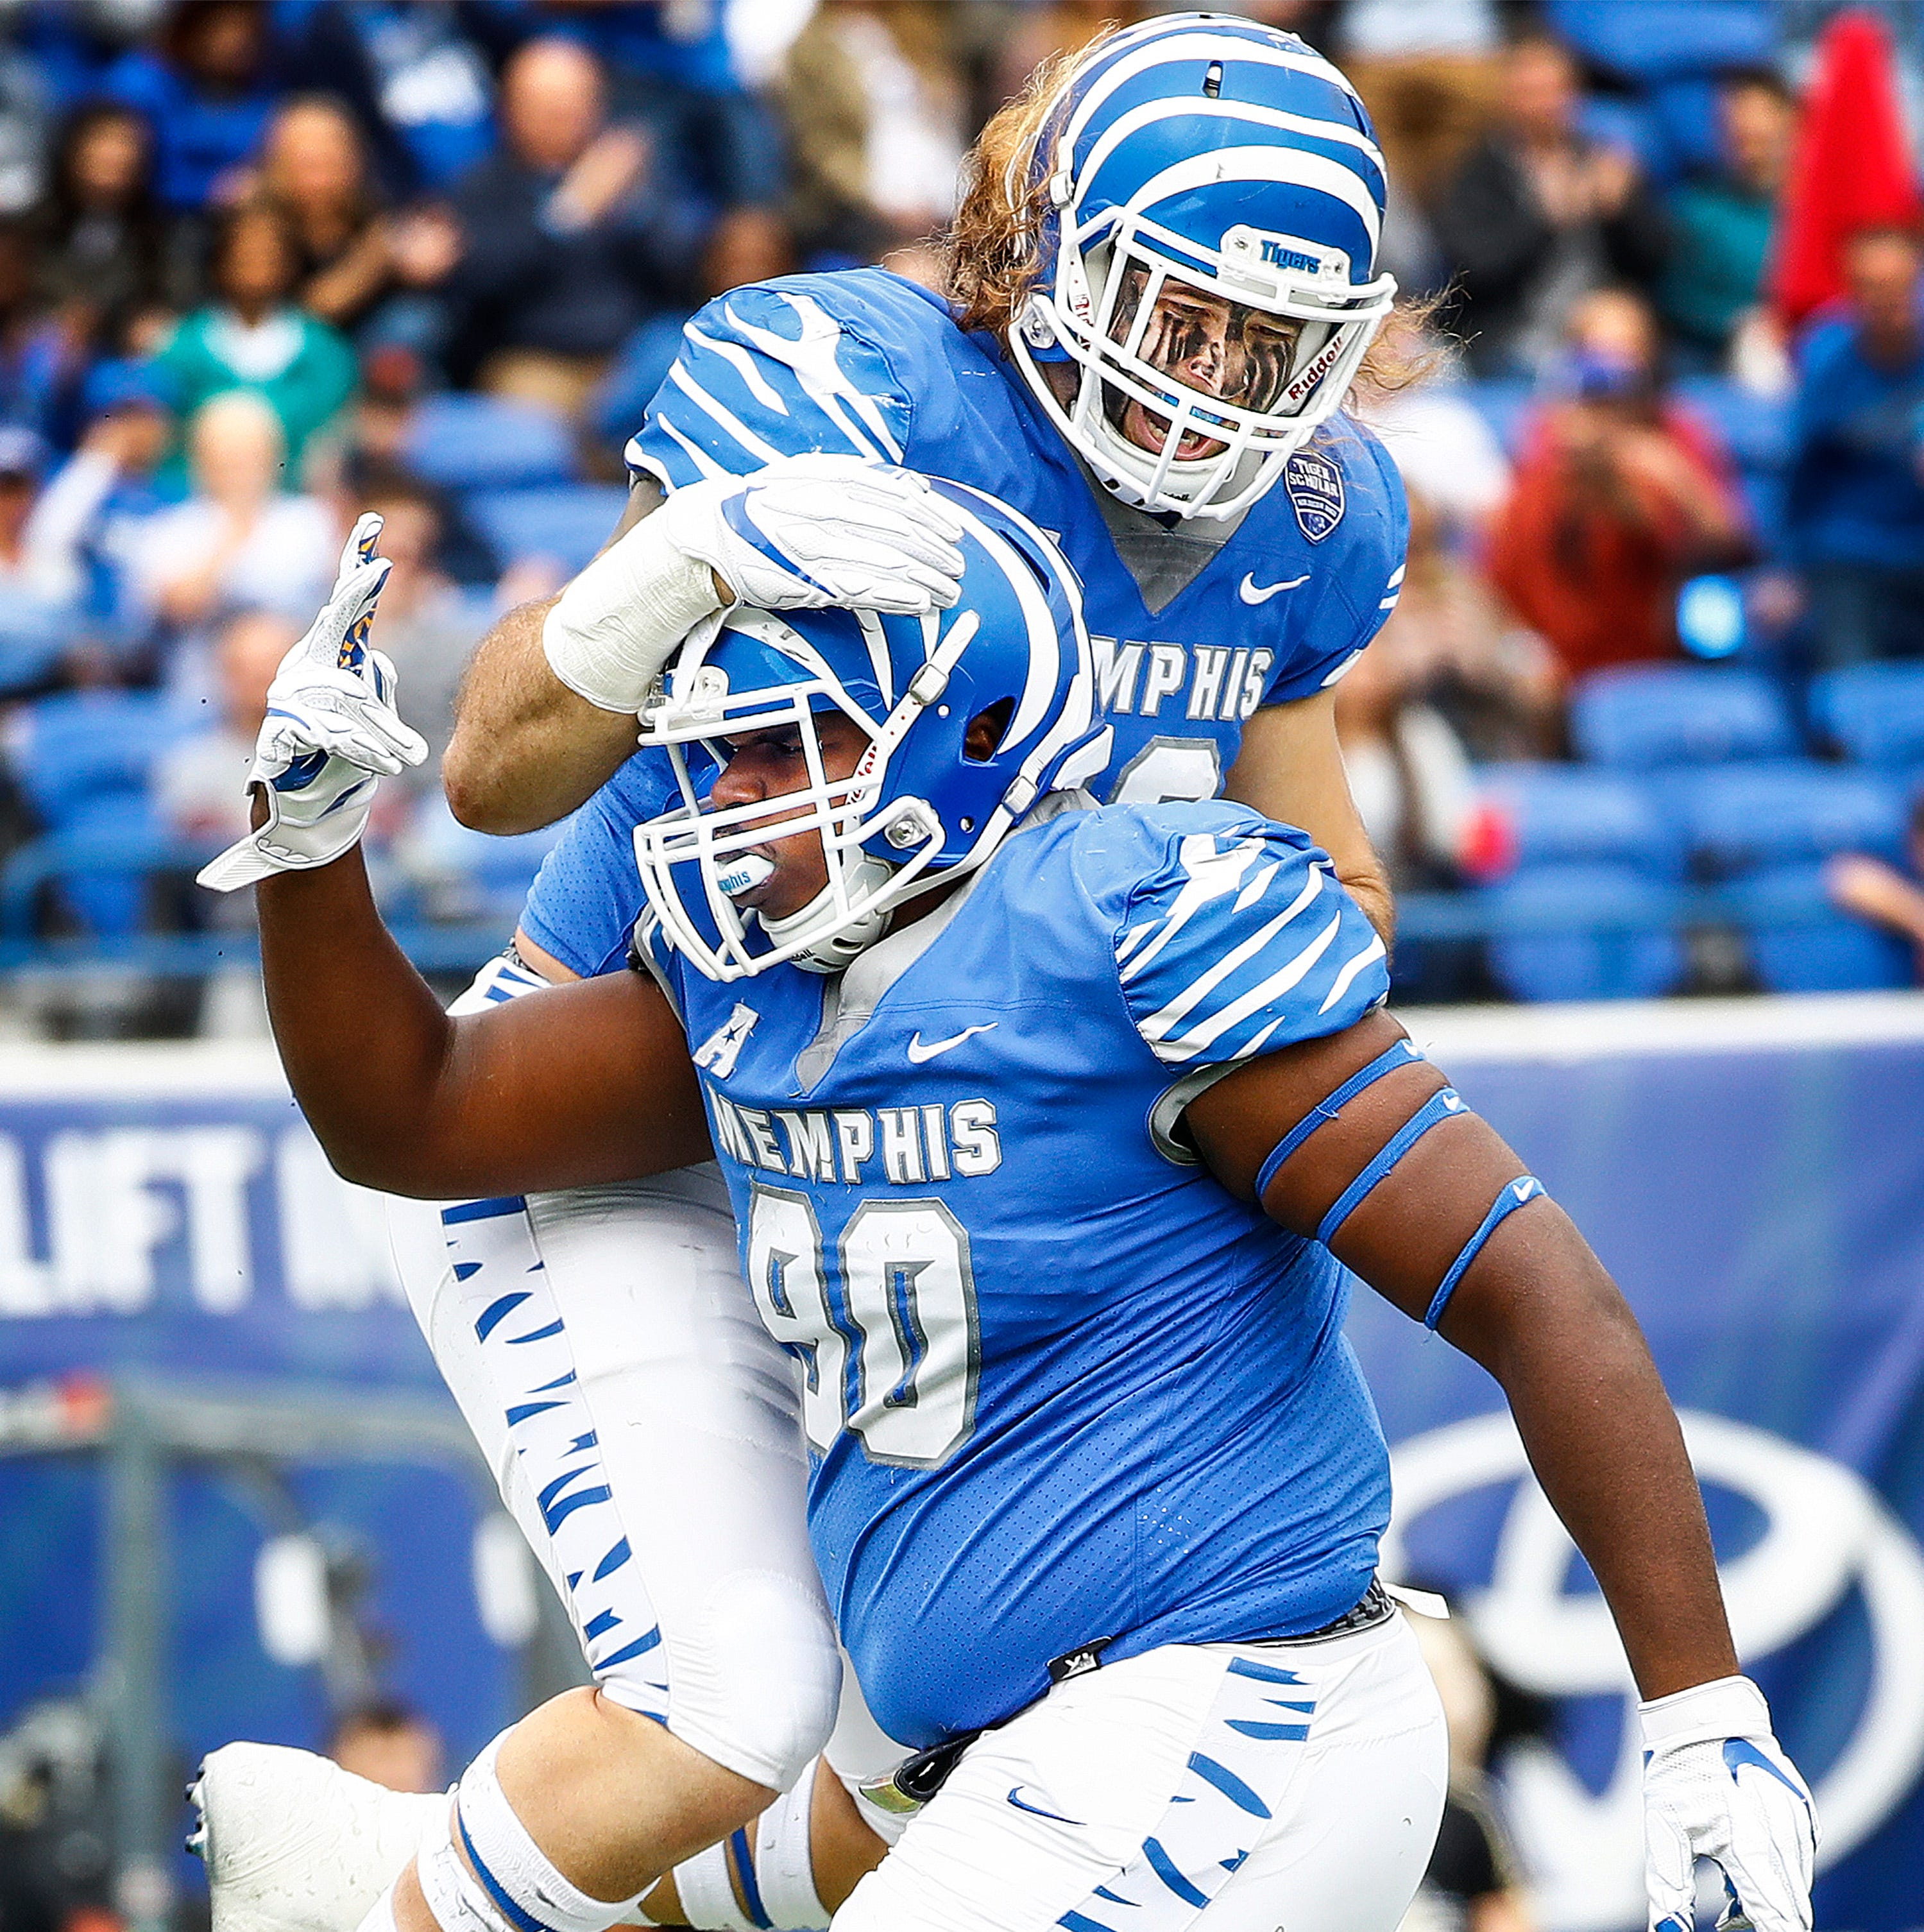 Memphis-Missouri football: 5 things to know for Saturday's game